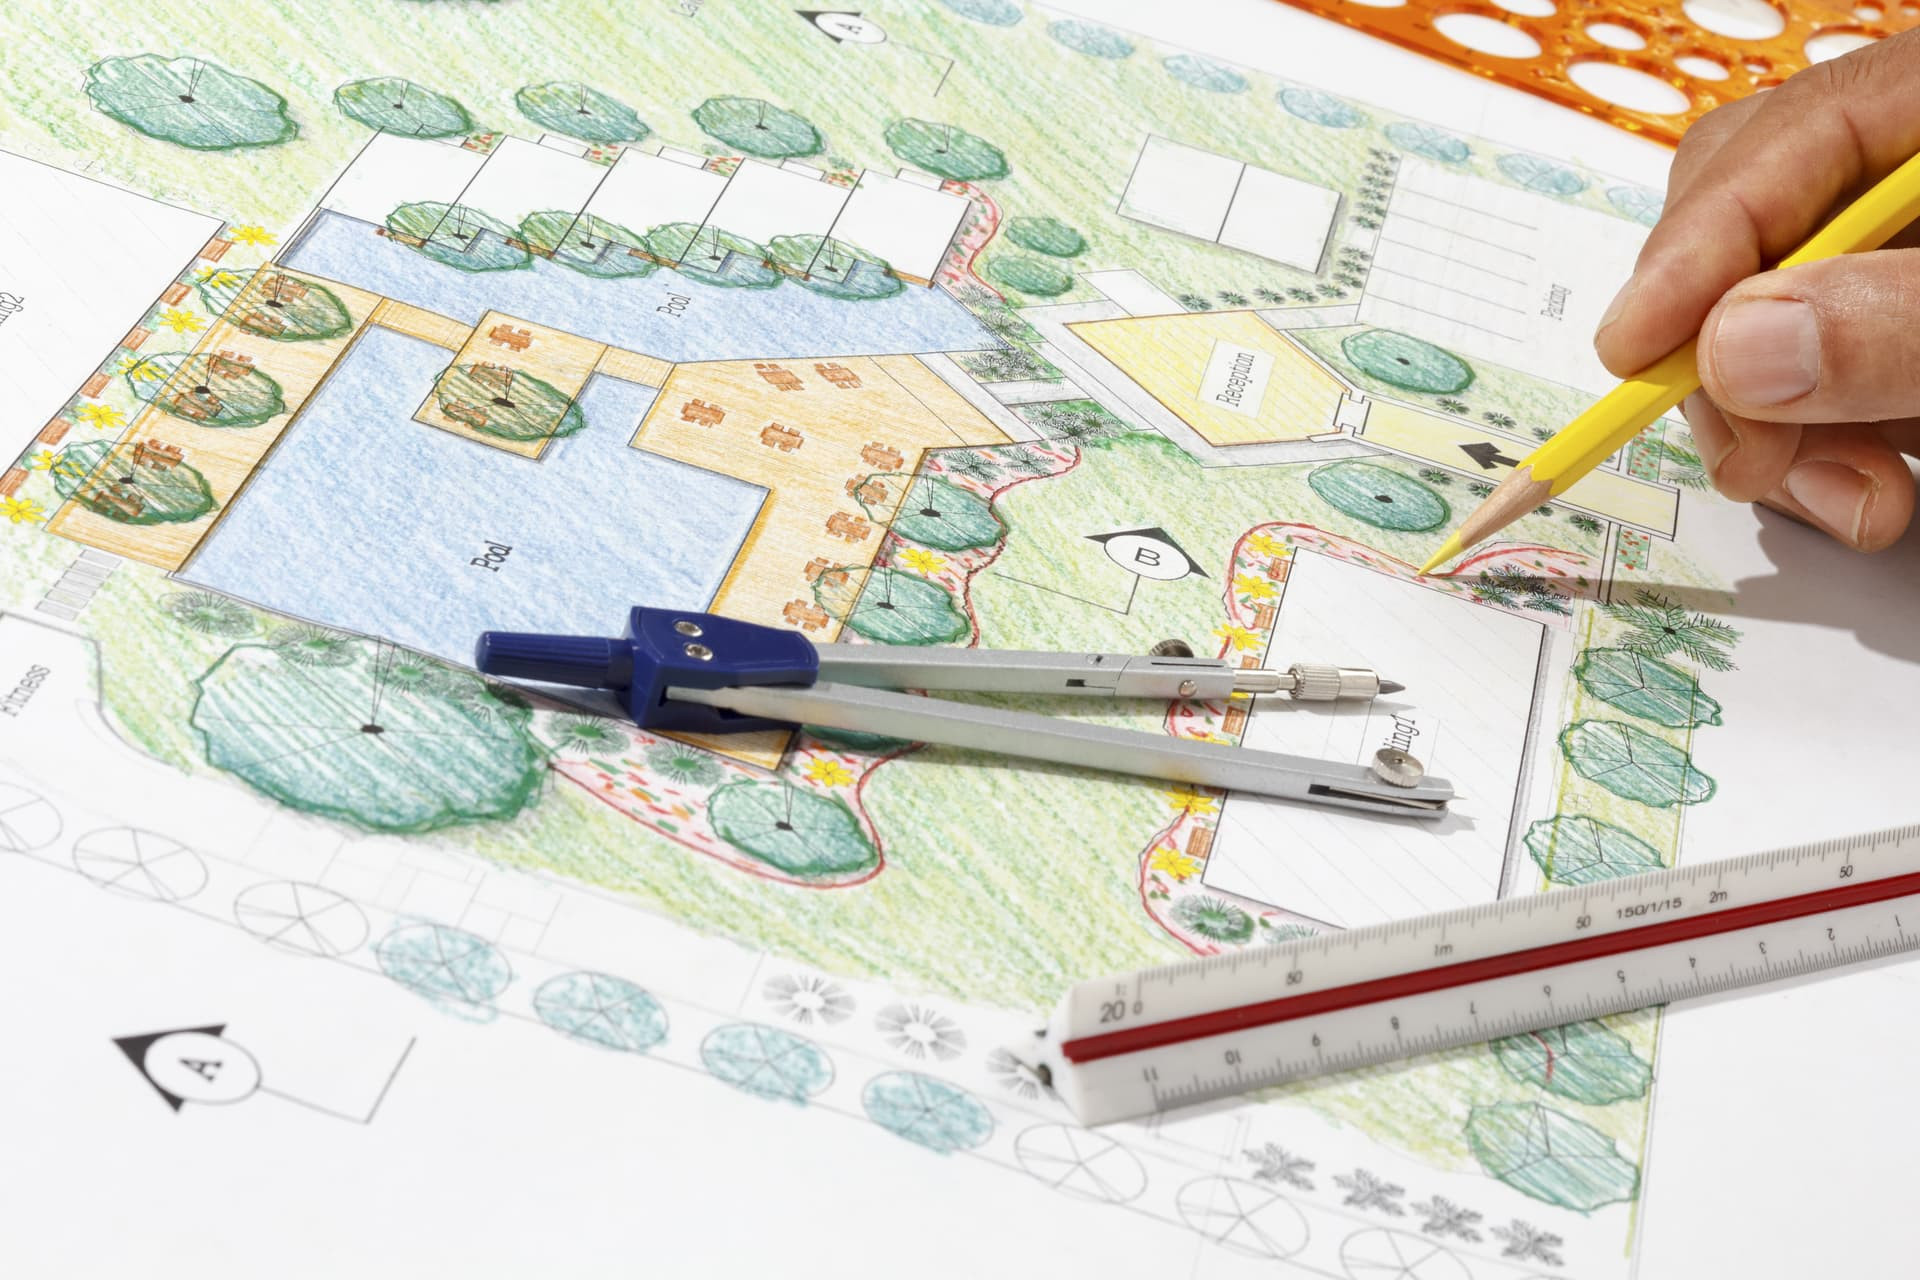 Drawing a landscape design plan